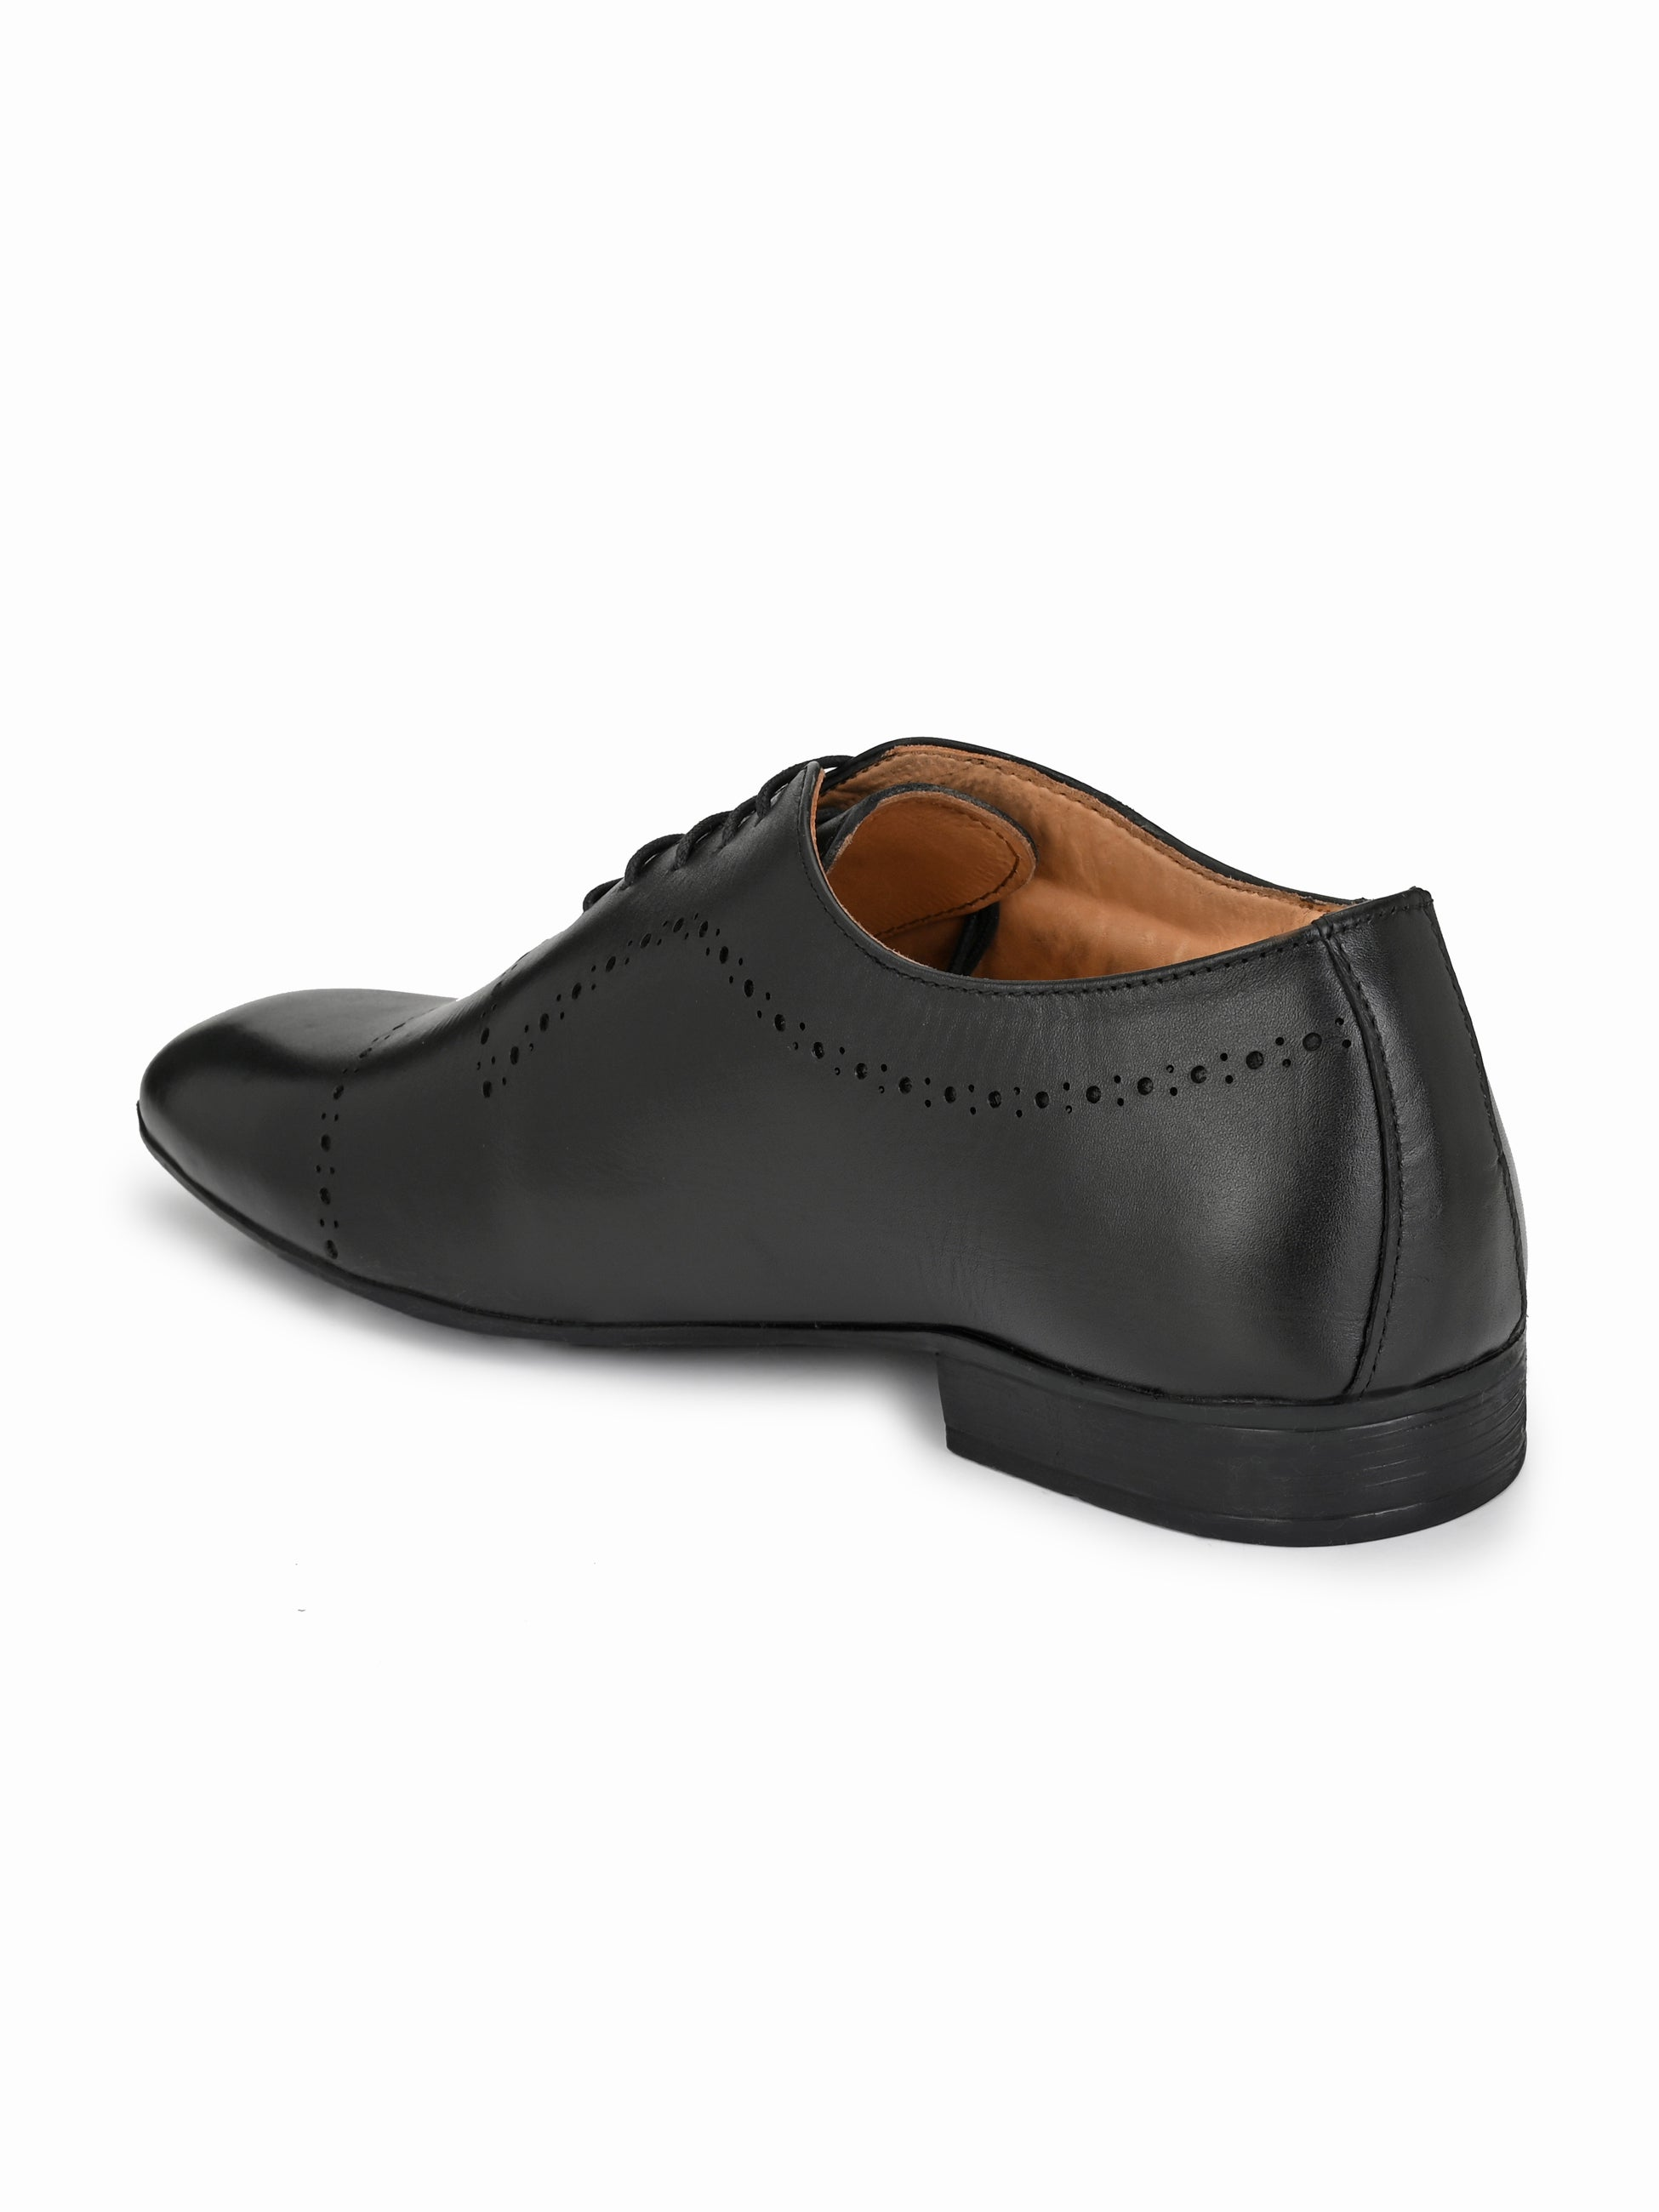 Black Leather Classic Brogues - shoegaro